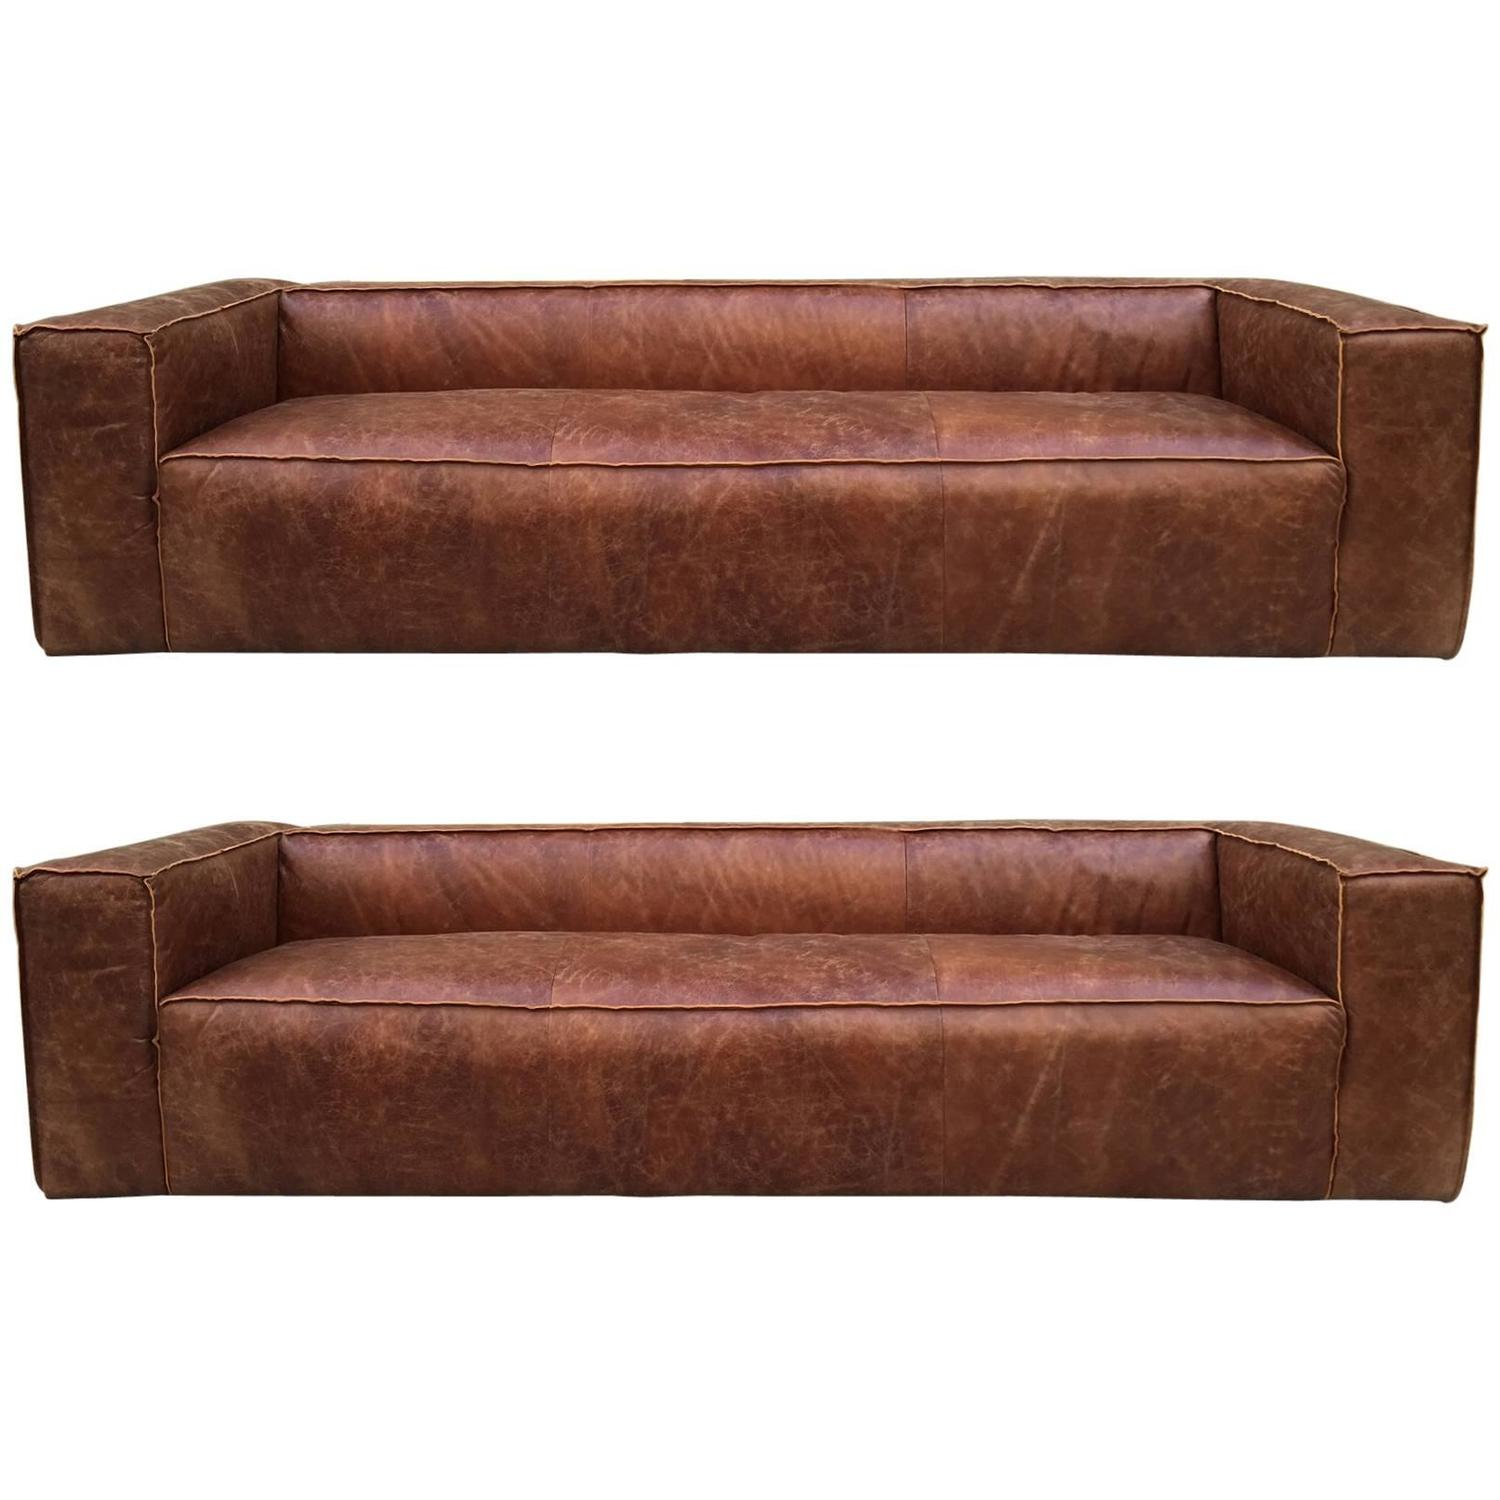 Pair 9 ft italian distressed leather sofa for sale at 1stdibs for Leather sofas for sale